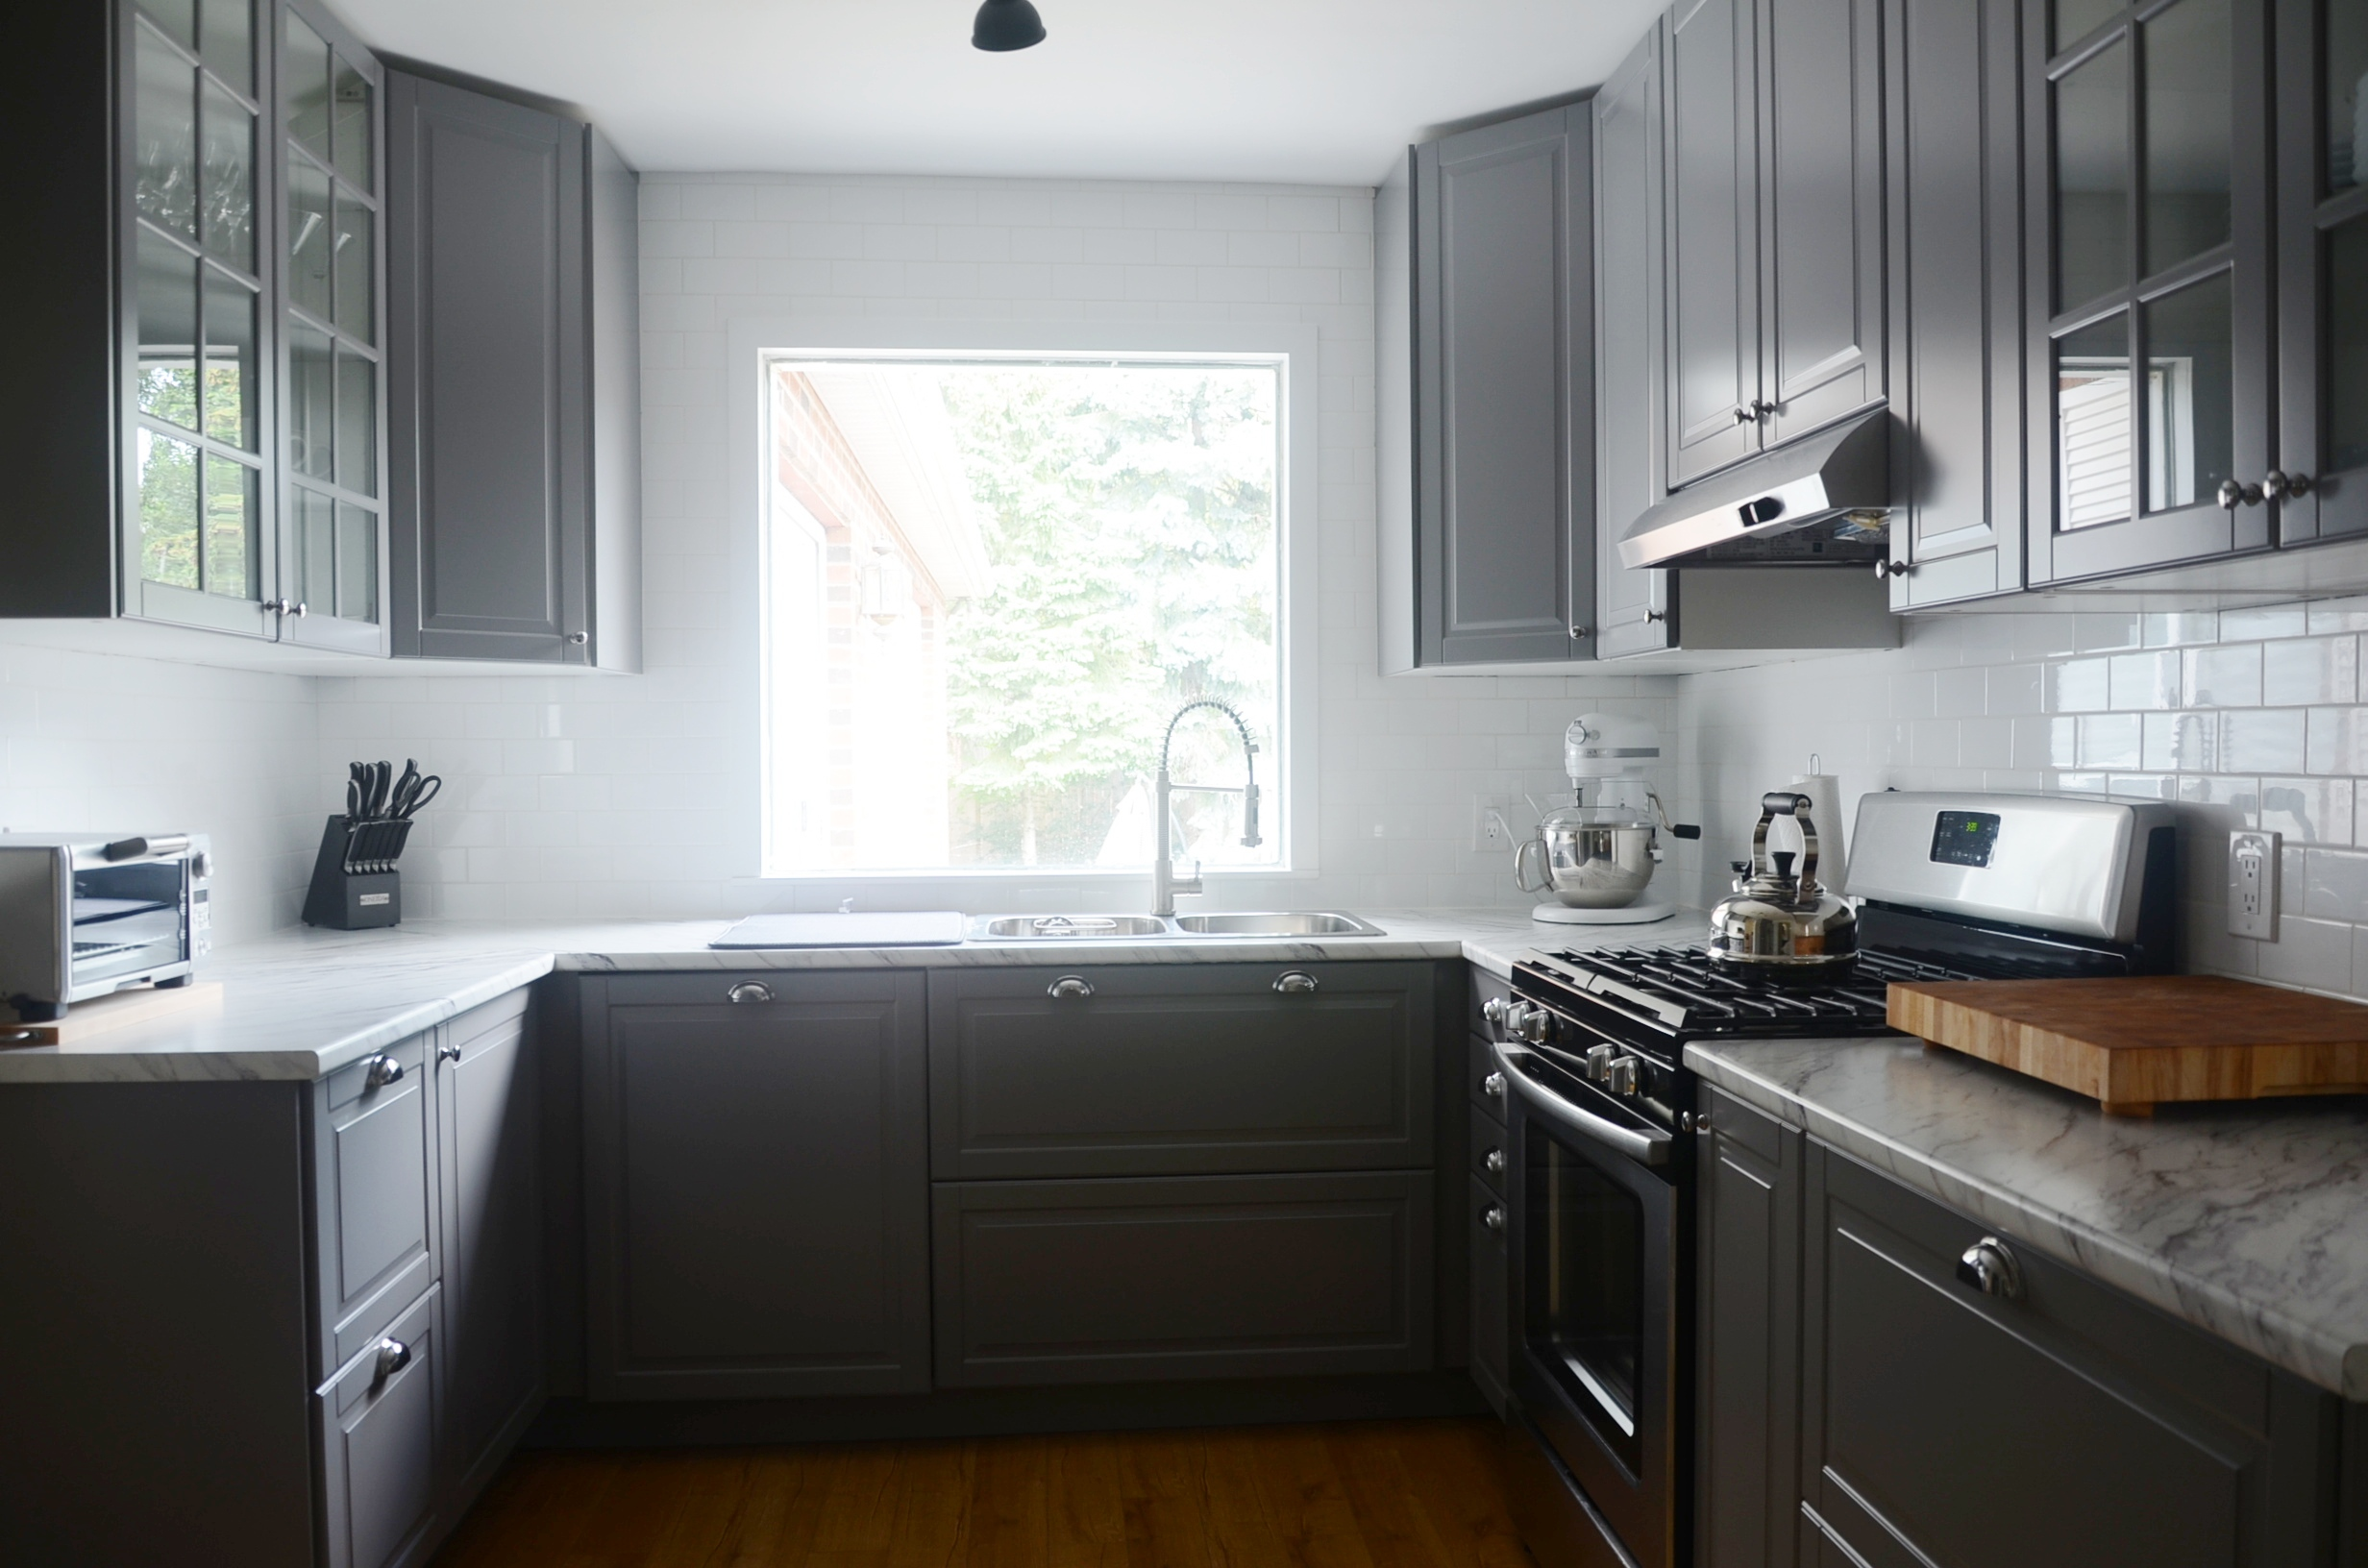 A modern ikea kitchen renovation in less than a month - Images of kitchens ...